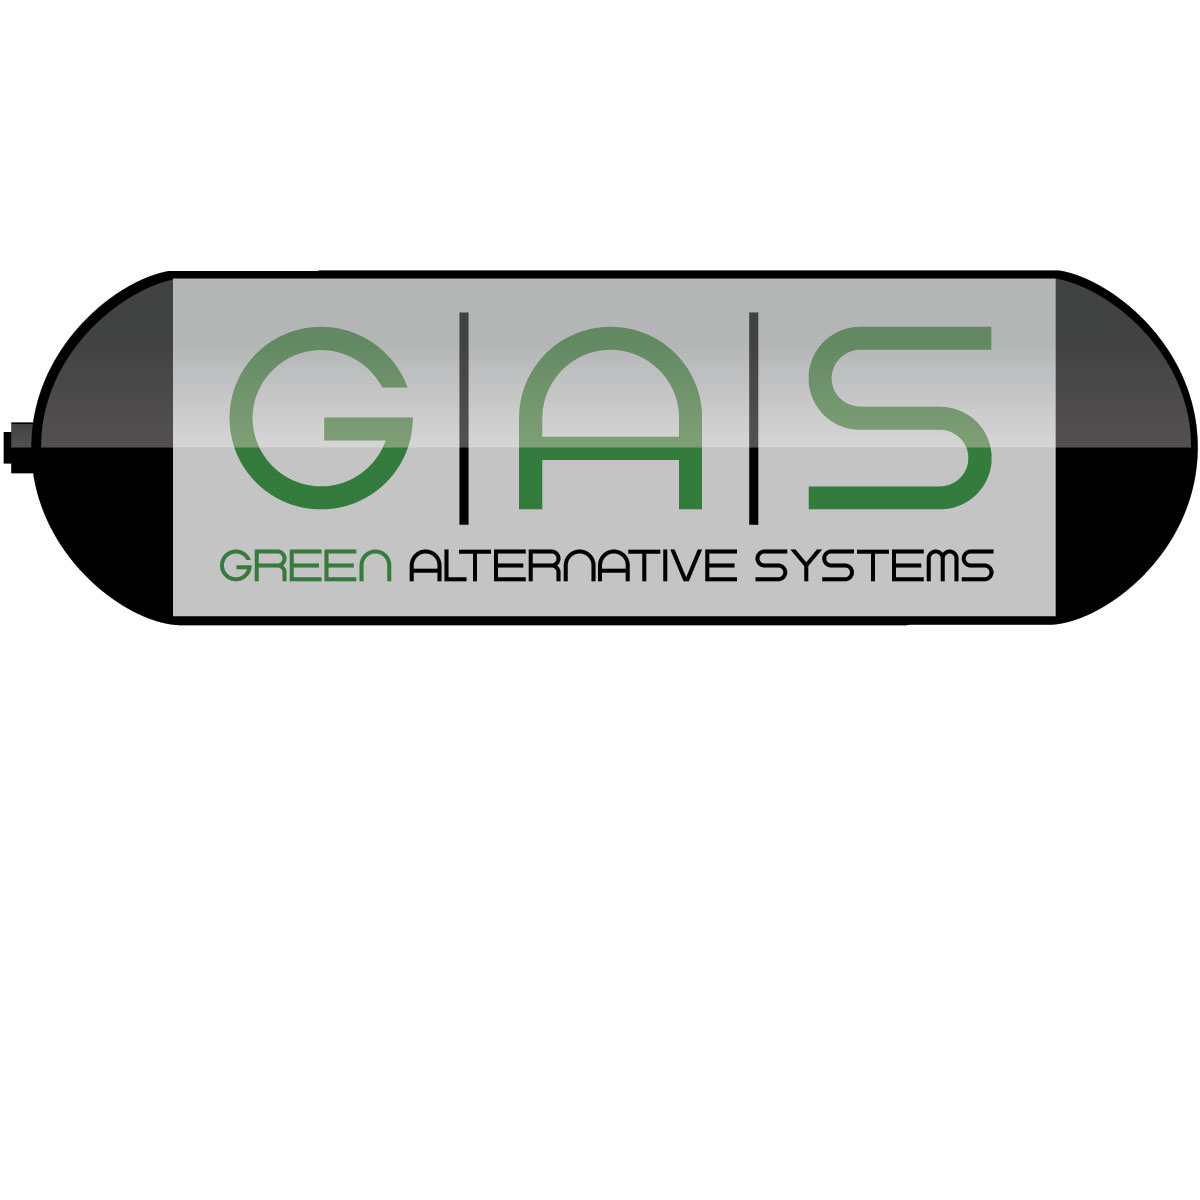 Green Alternative Systems